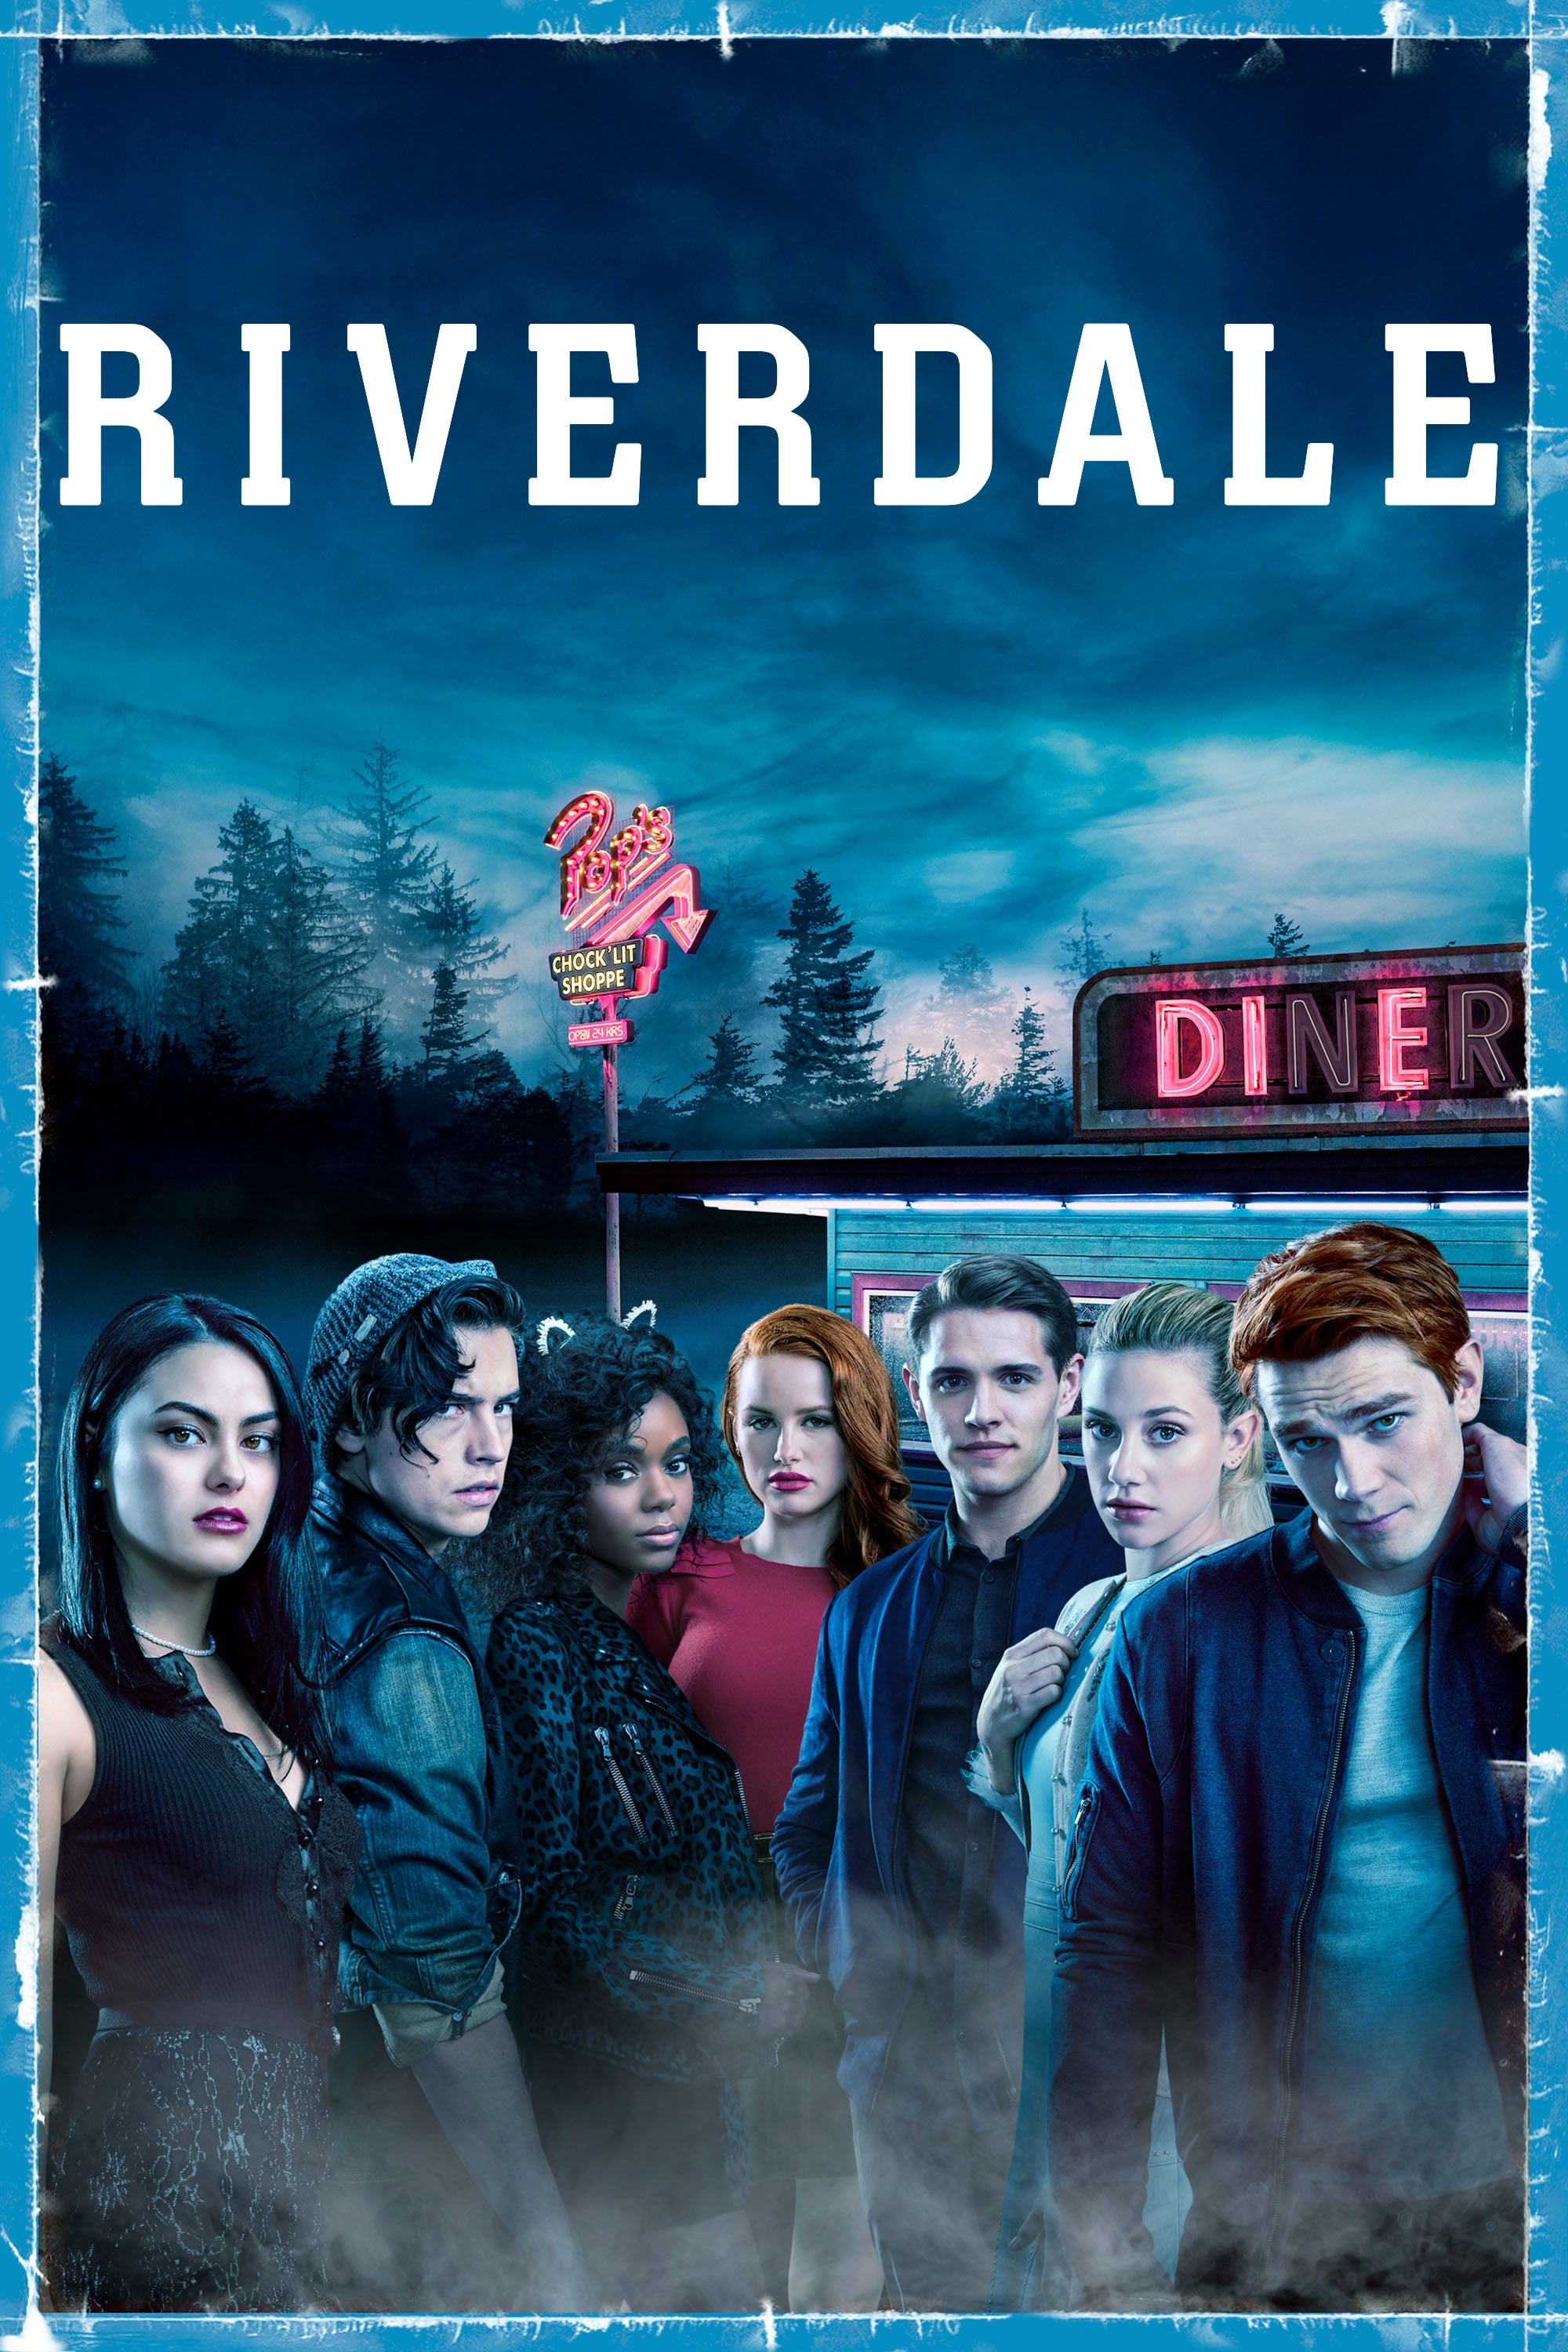 image for Riverdale